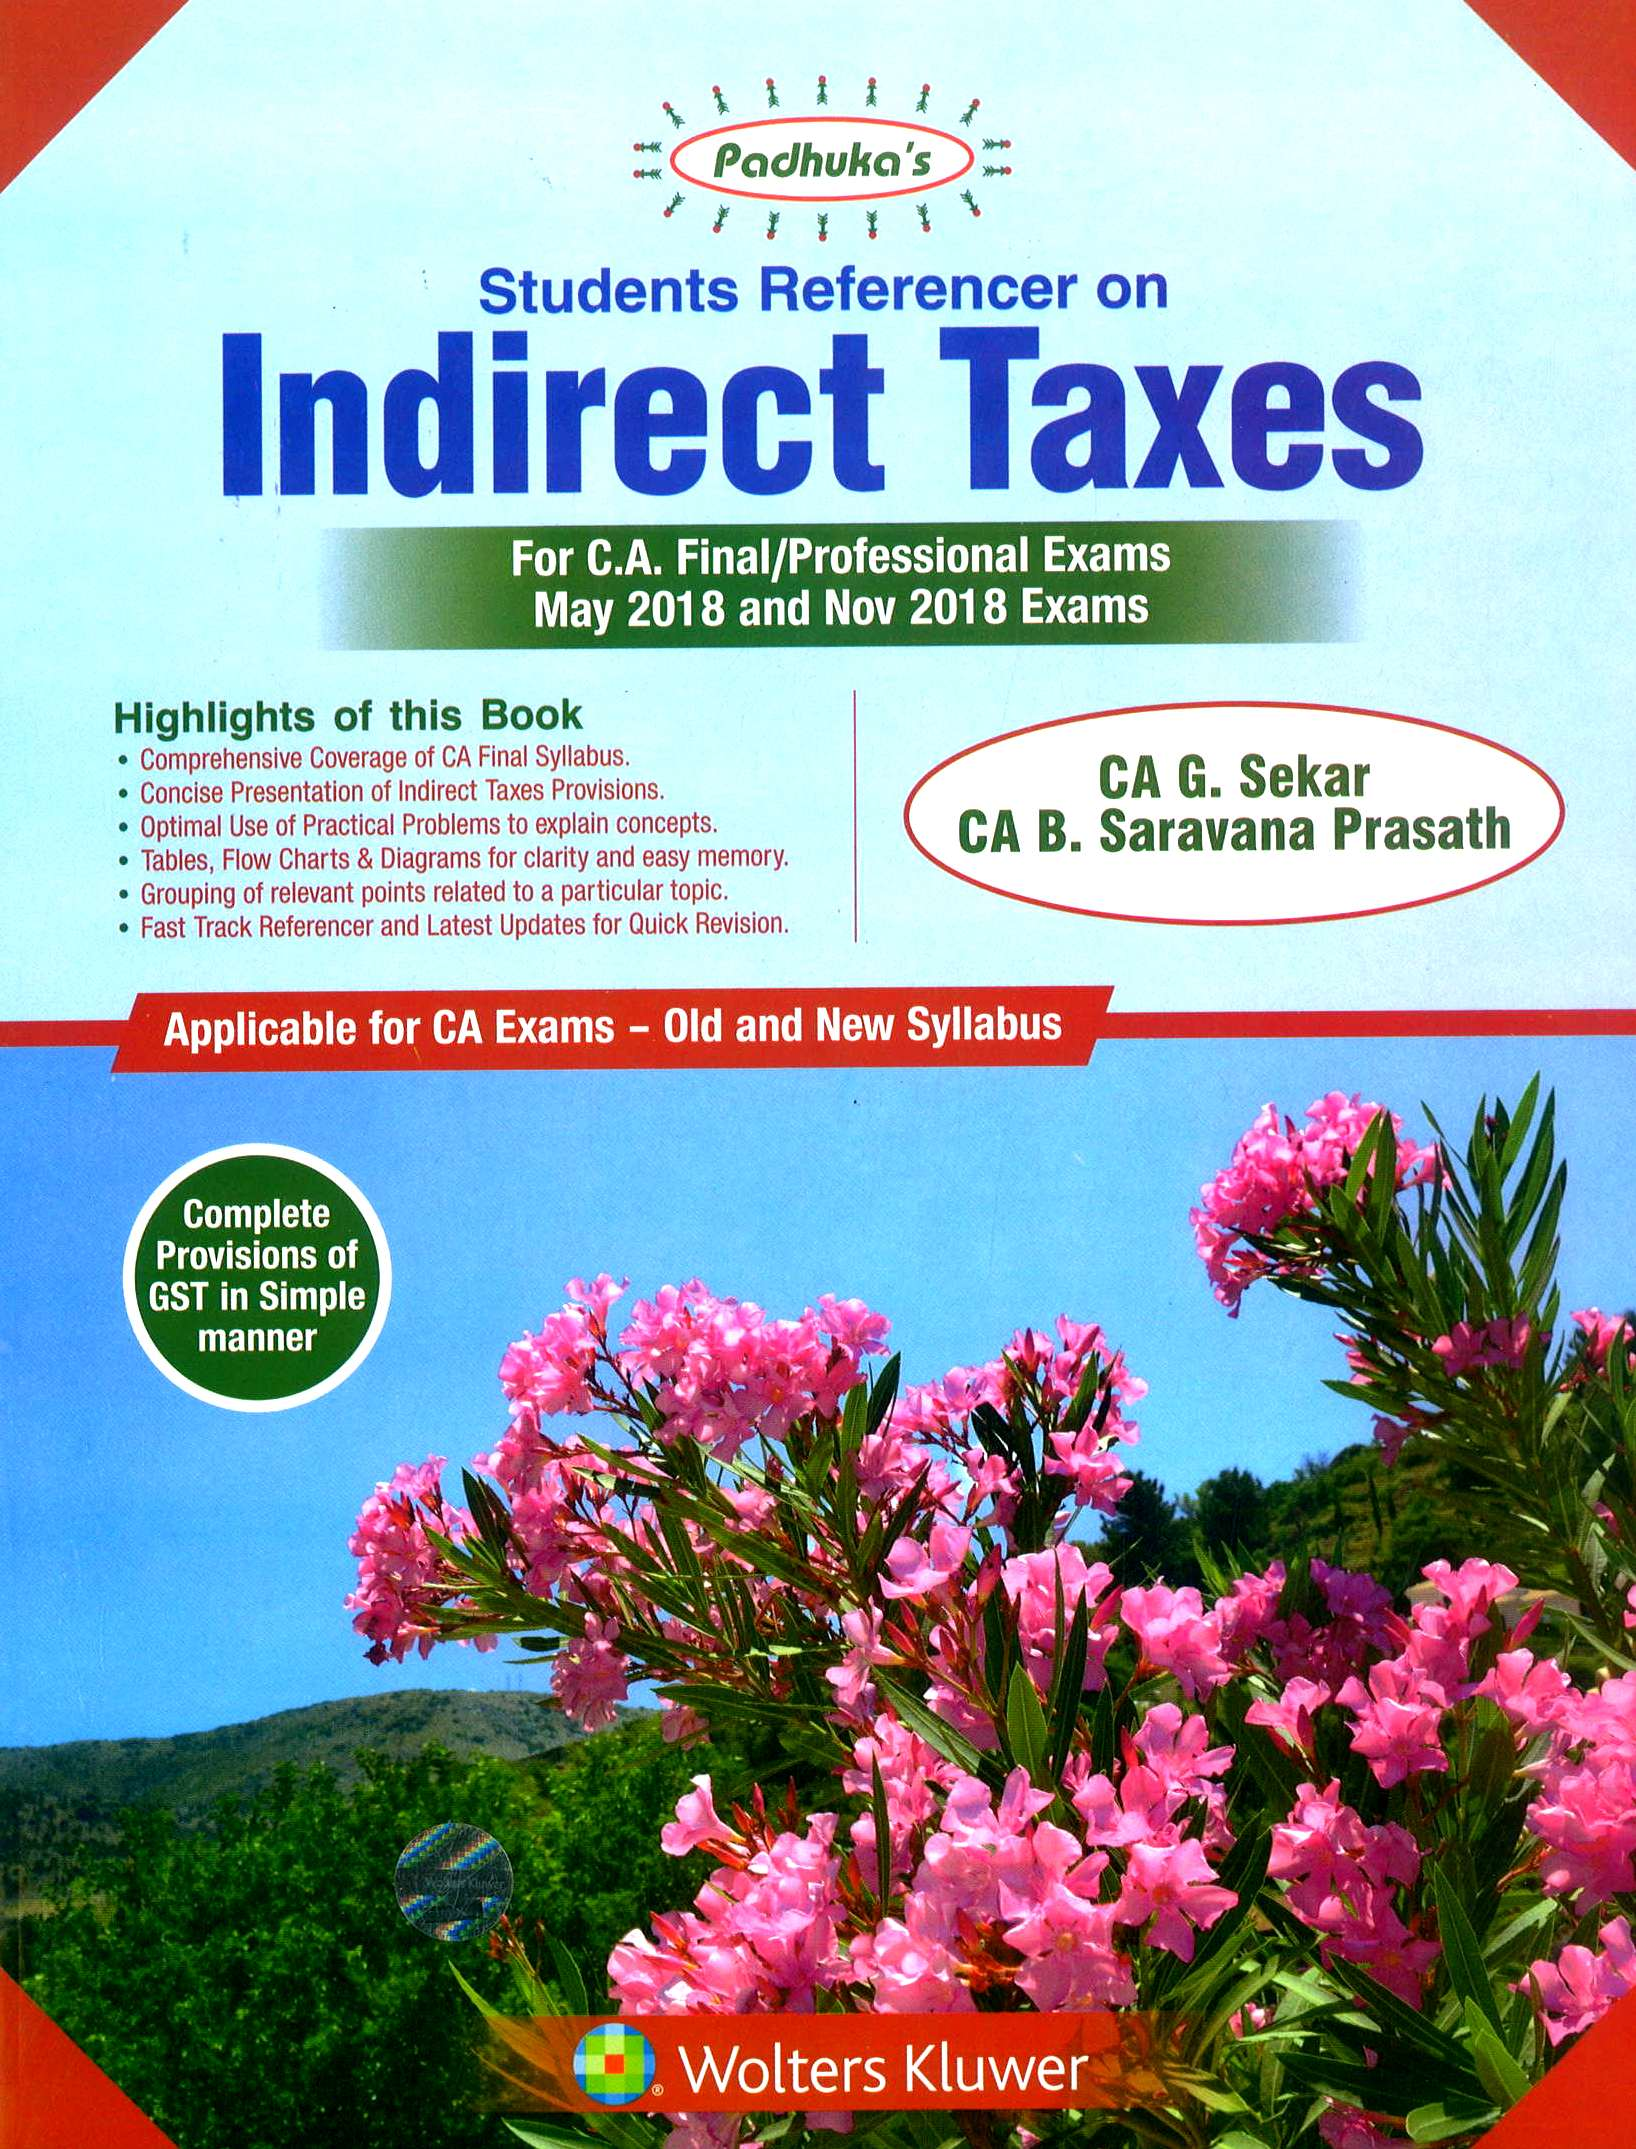 Padhuka Students' Reference on Indirect Taxes for CA Final (old and New Syllabus) for May 2018 and Nov 2018 exam by CA G. Sekar and CA. B Saravana Prasath (Wolters Kluwer Publishing) 14th Edition June 2018